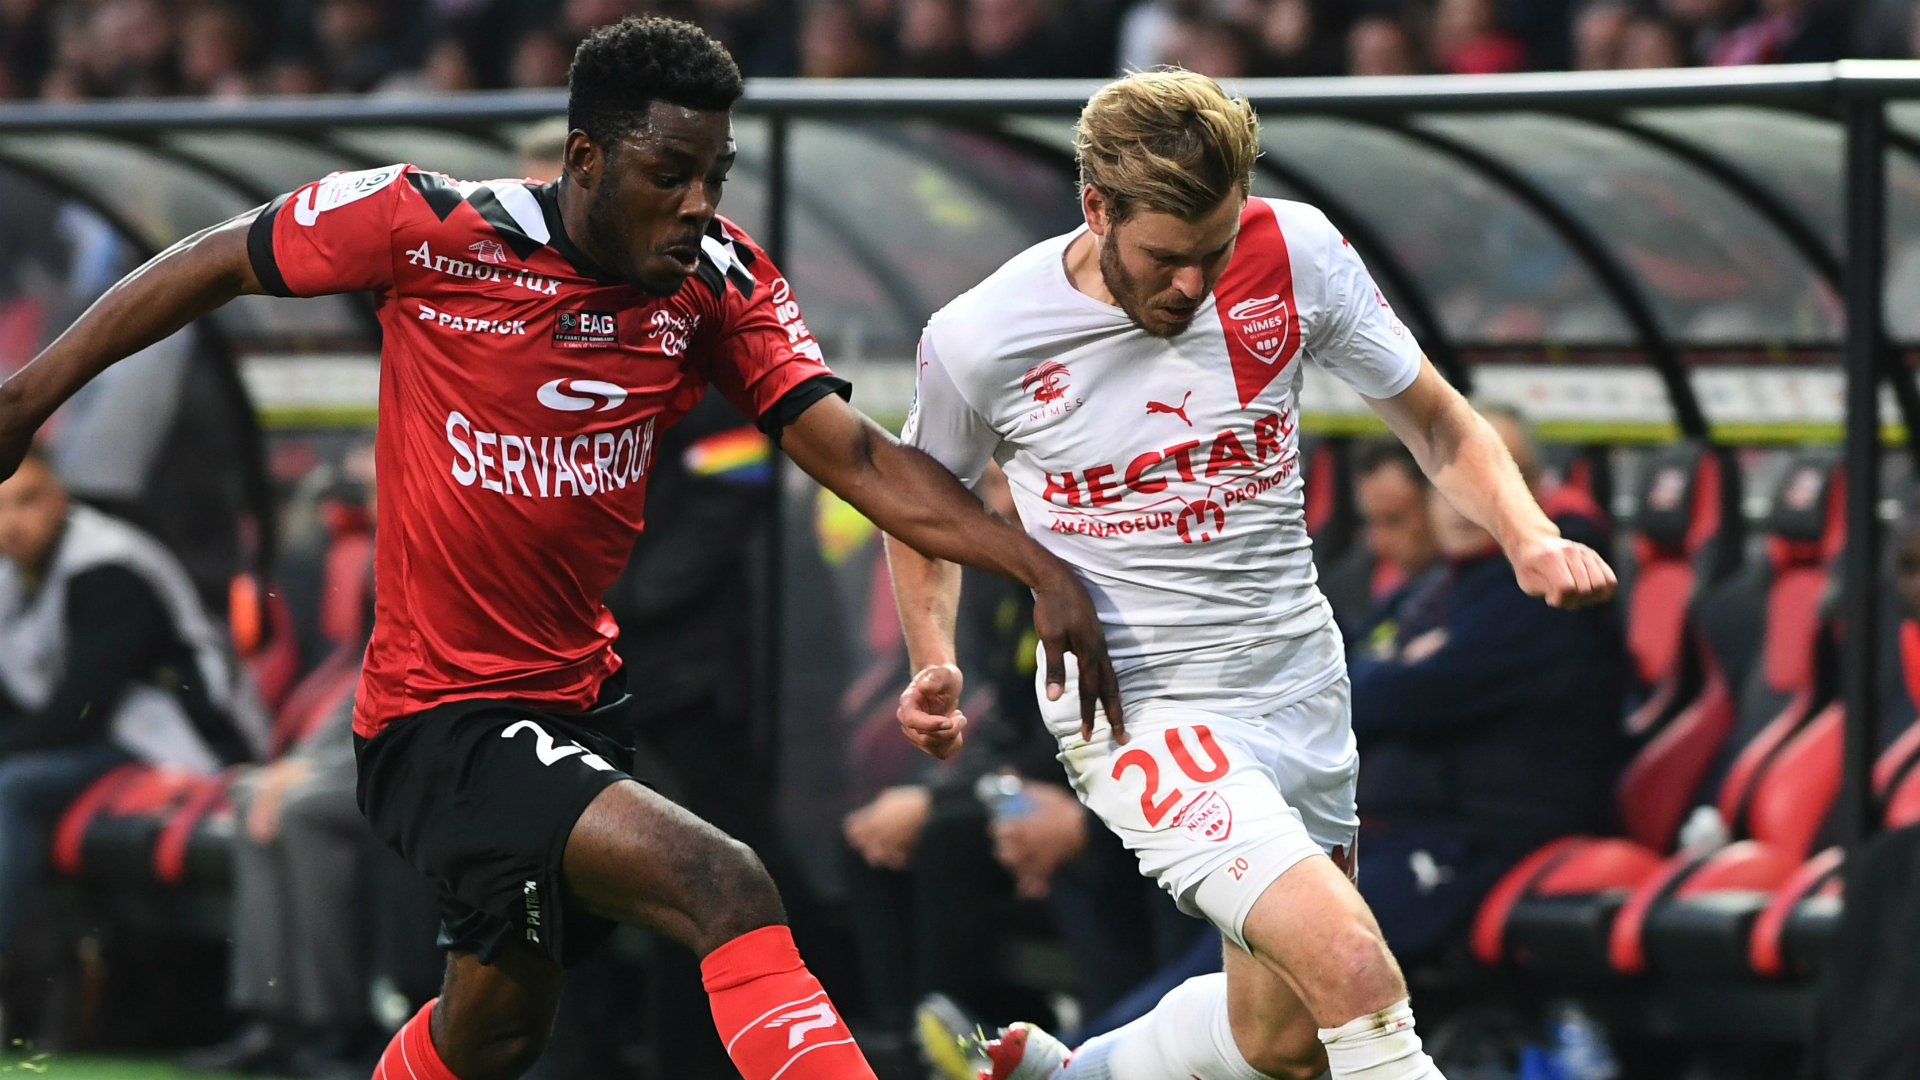 Nightmare for Eboa Eboa as knee injury rules Guingamp star out of 2020-21 season